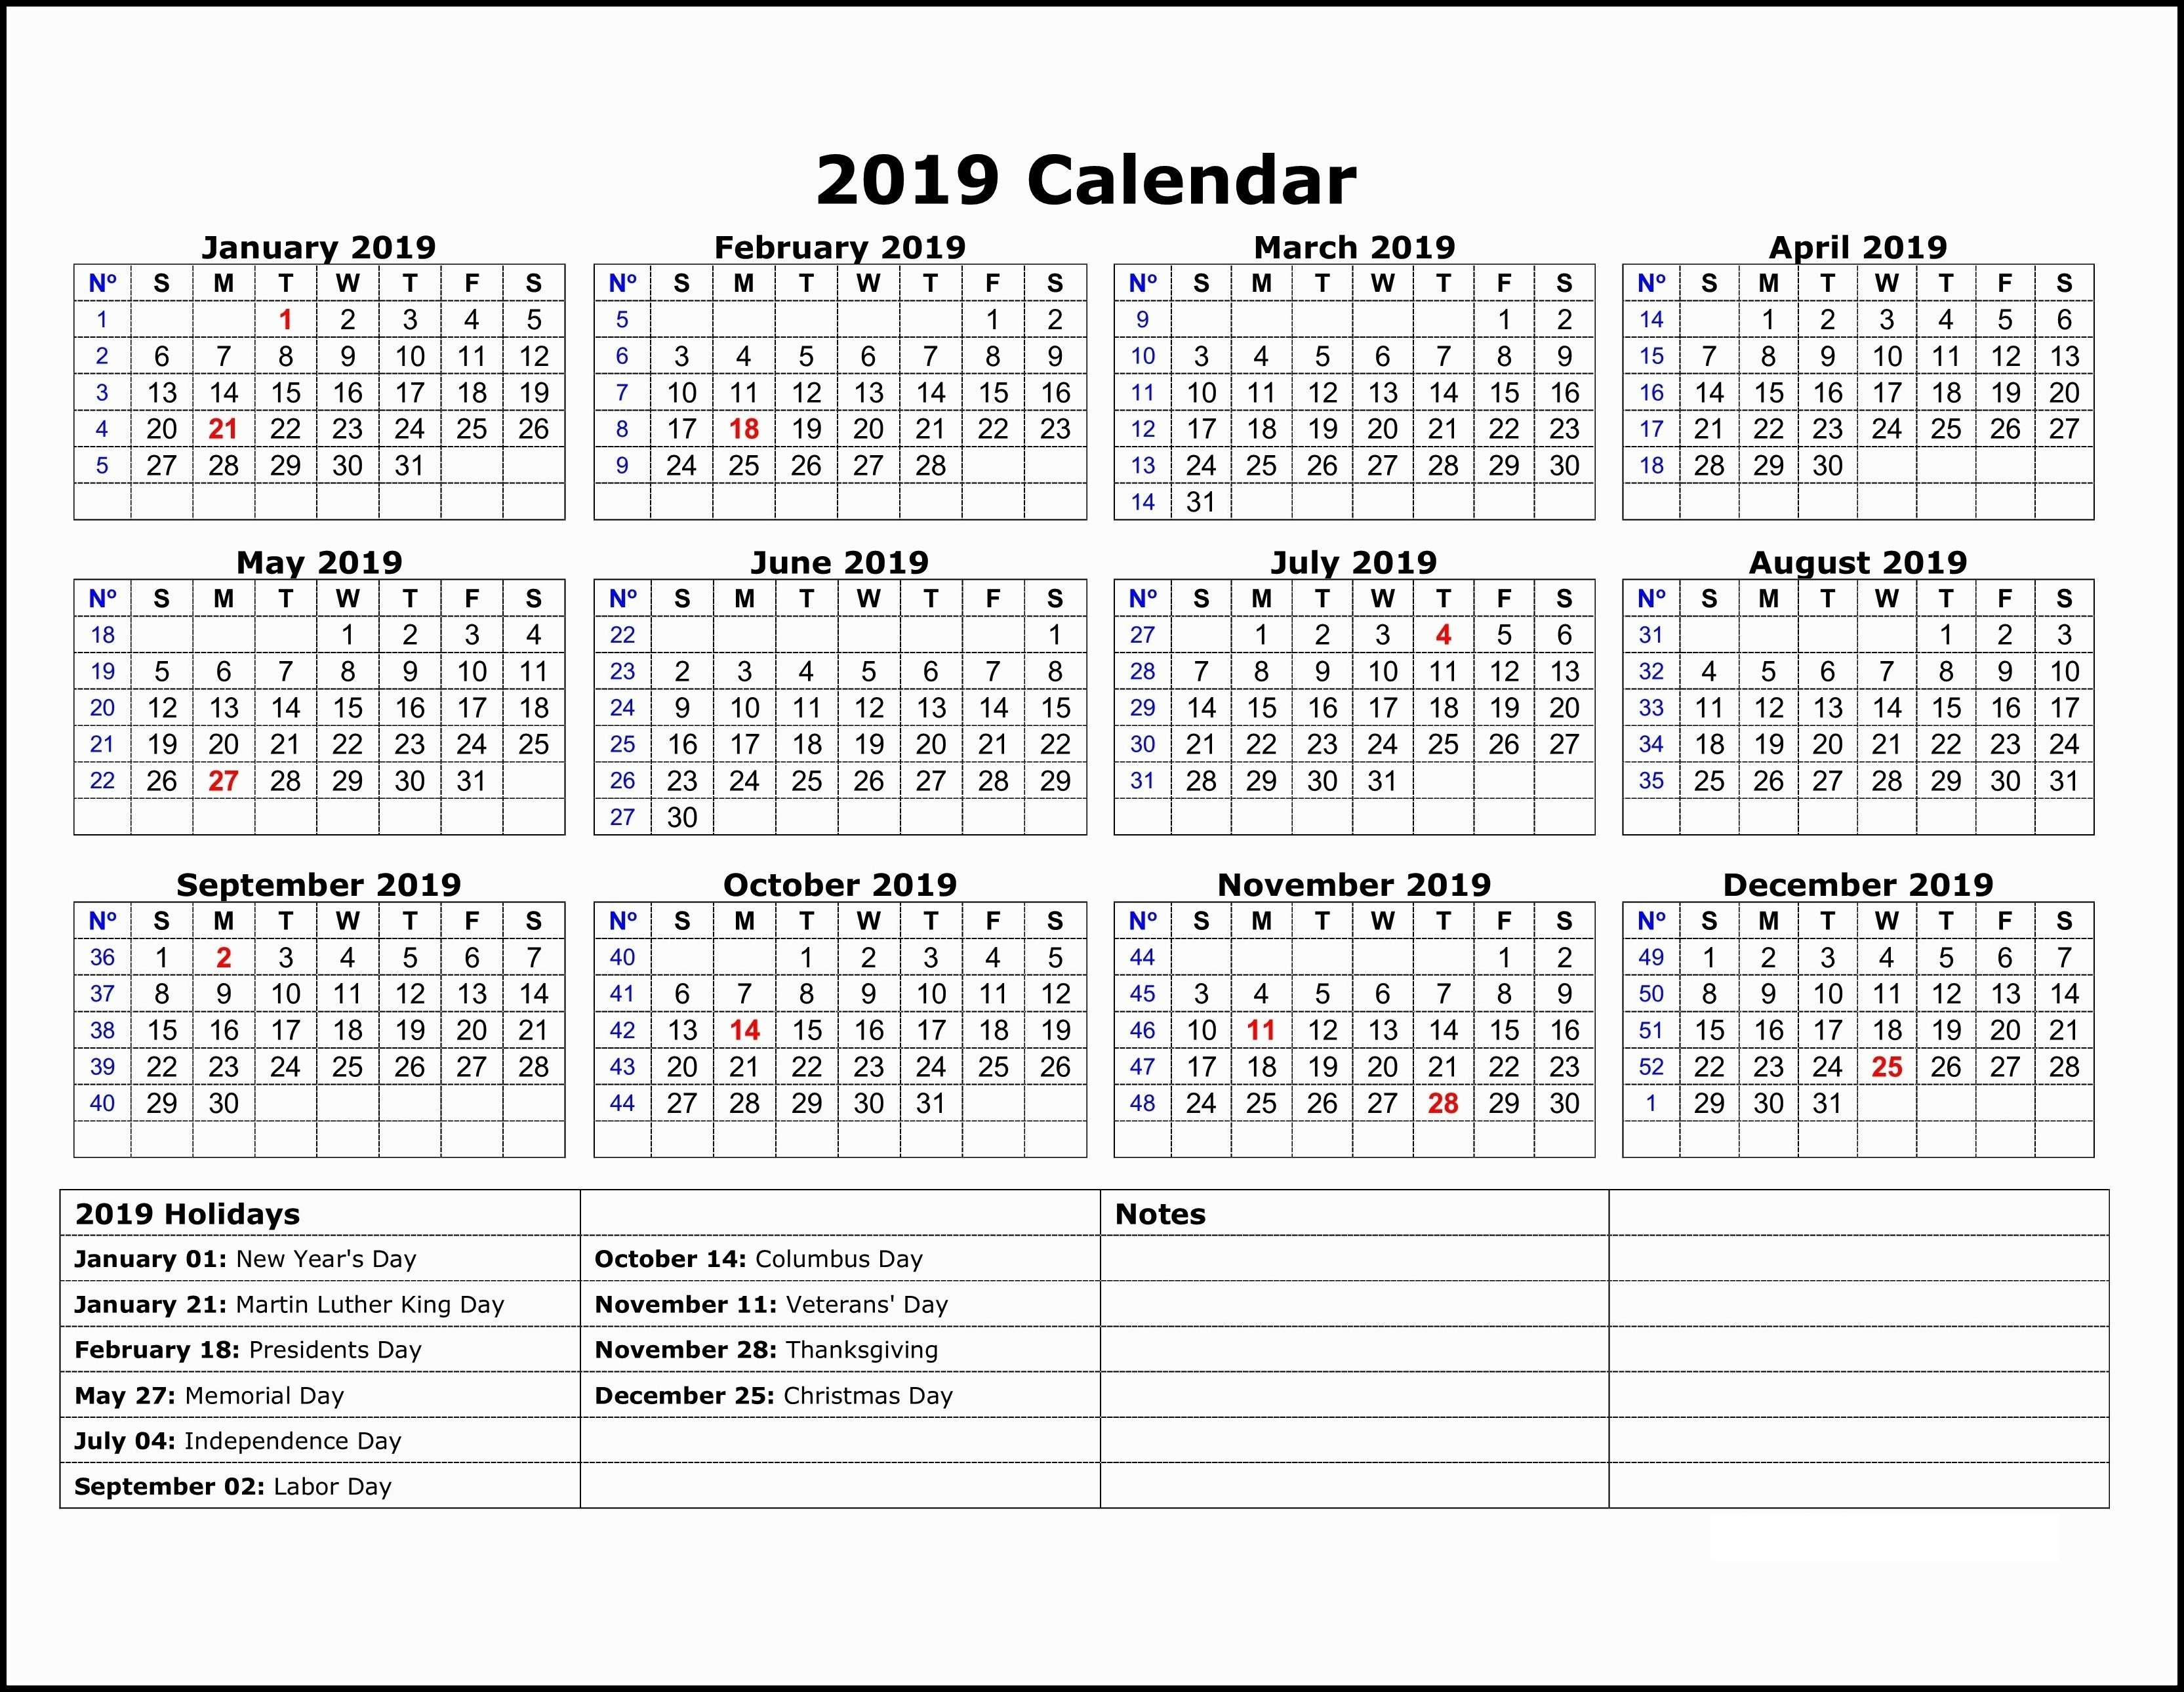 Free Yearly 12 Month Calendar One Page Template Printable With Holidays pertaining to National Day Calendar 2020 Printable